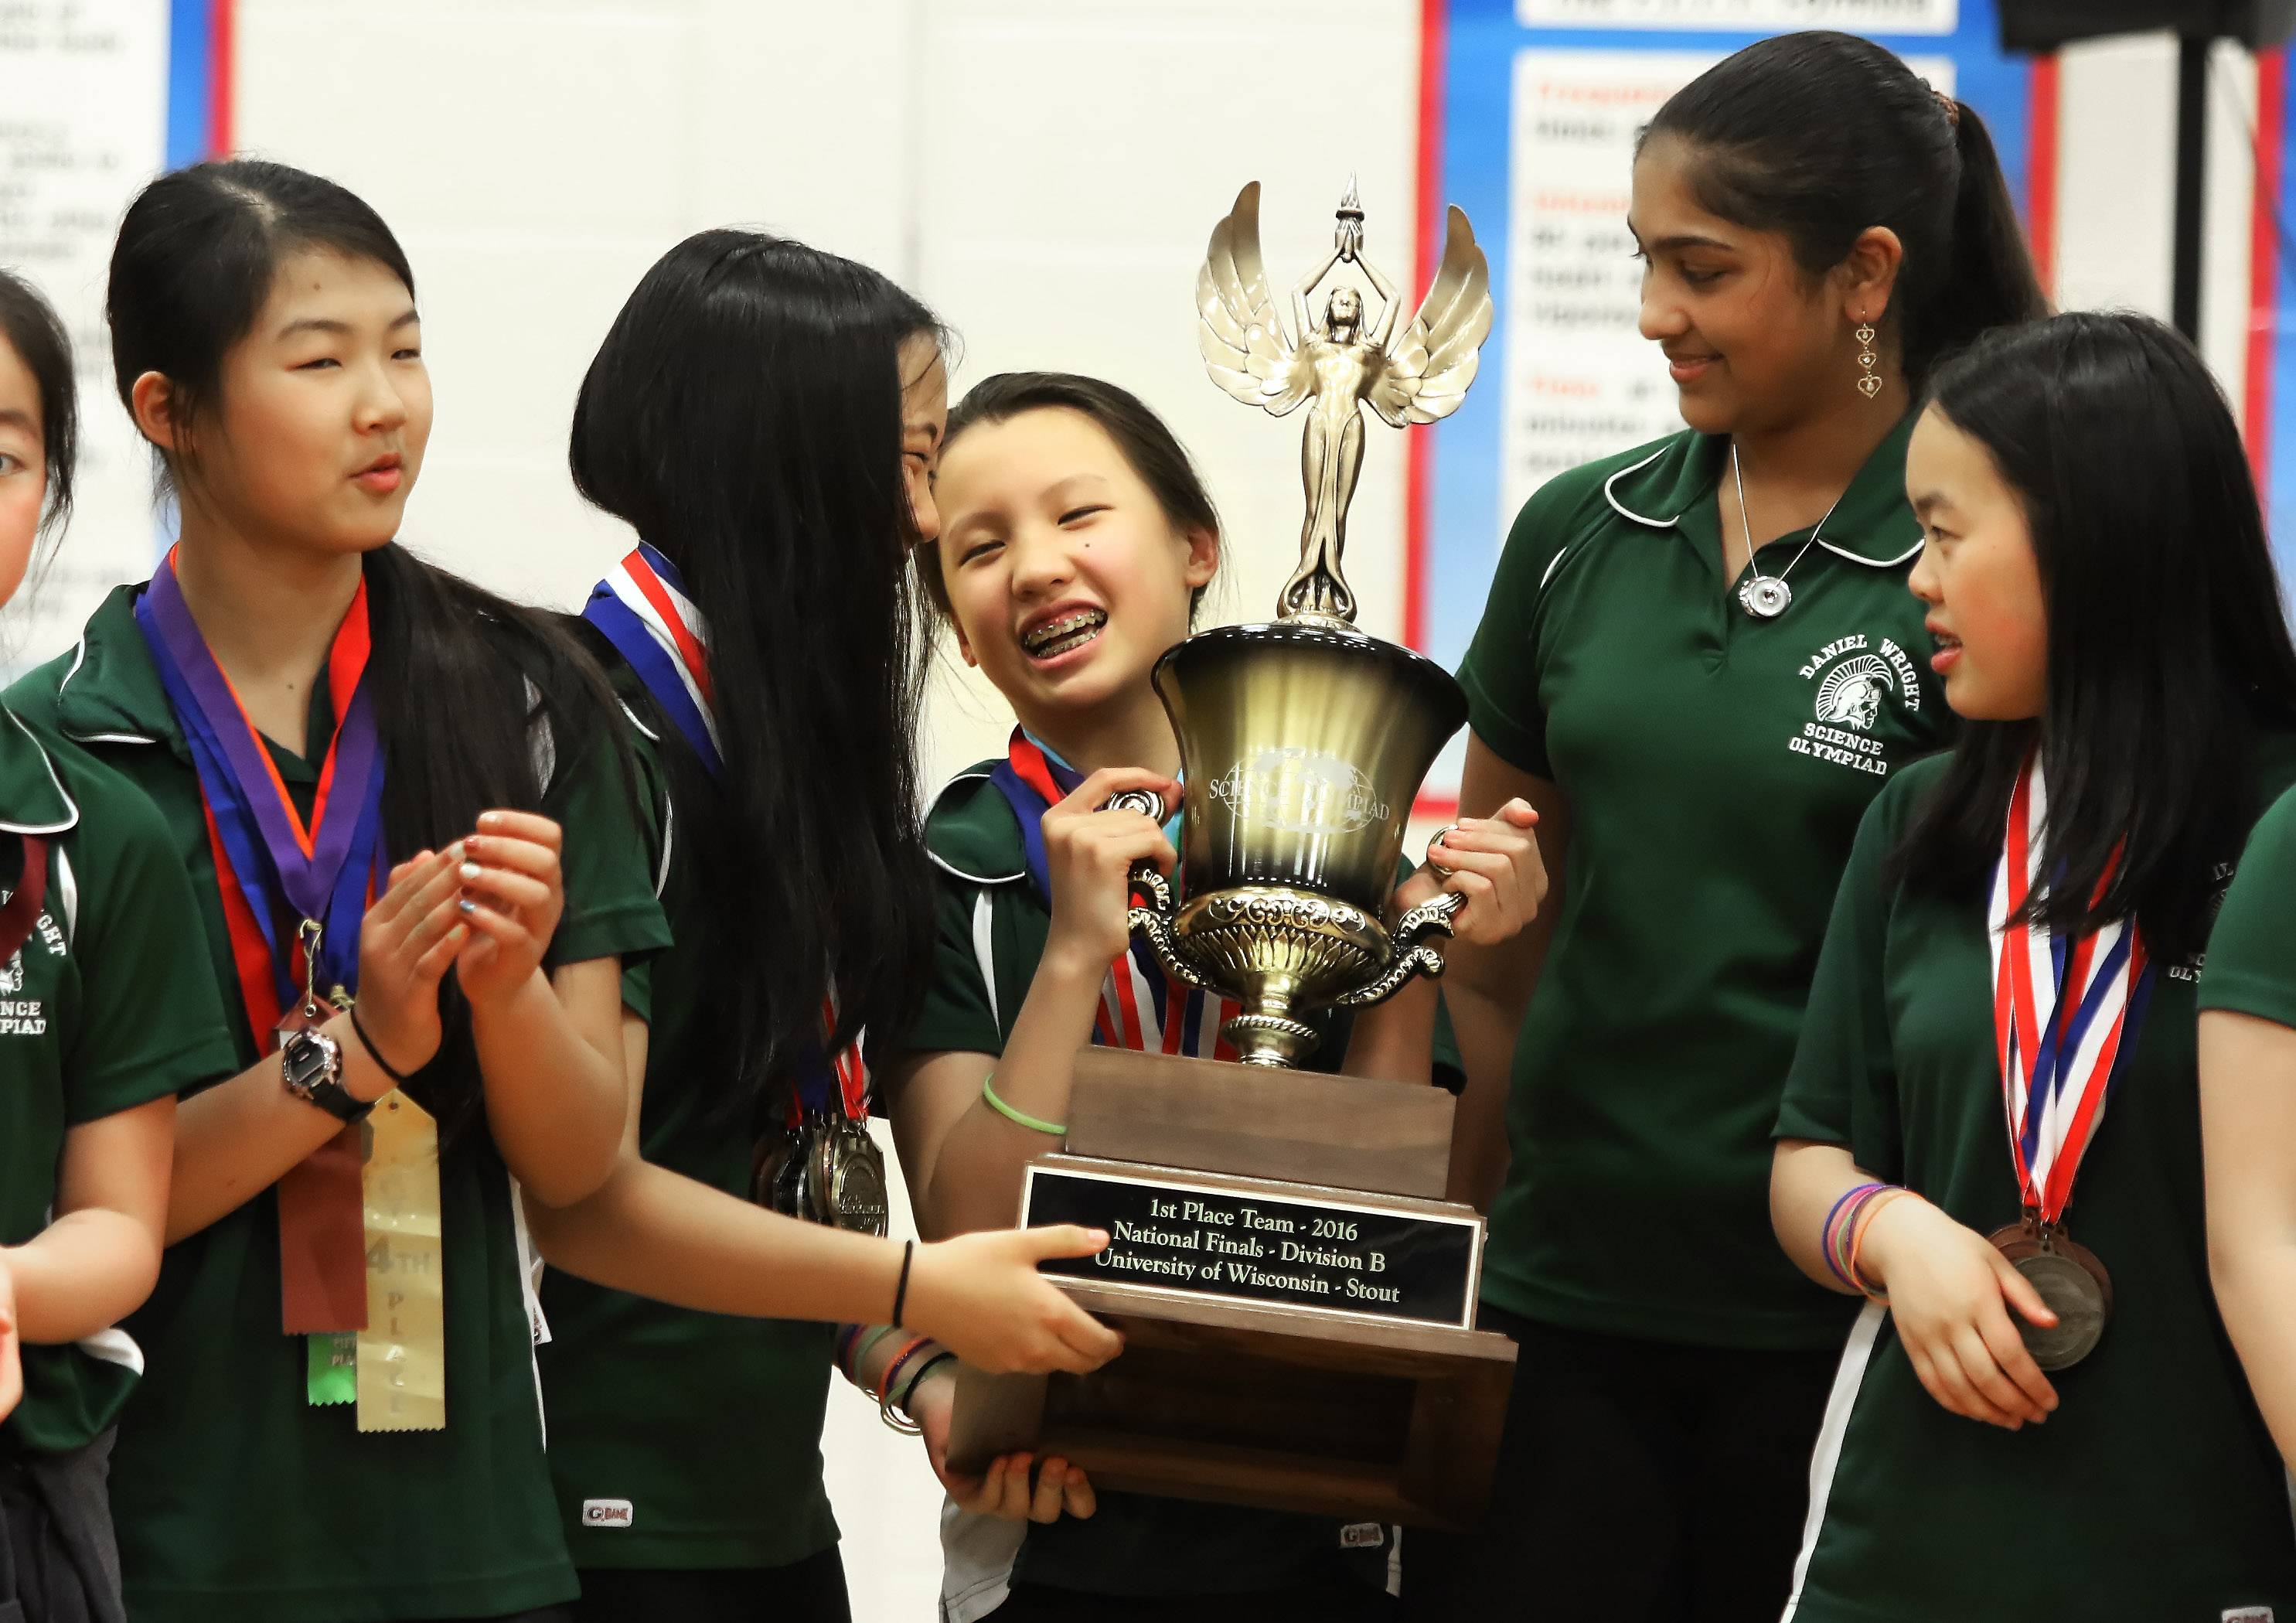 Wright Junior High School sixth-grader Anna Cai and Hannah Liu, left, hold the national trophy won by the school's Science Olympiad team during an assembly at the Lincolnshire school.